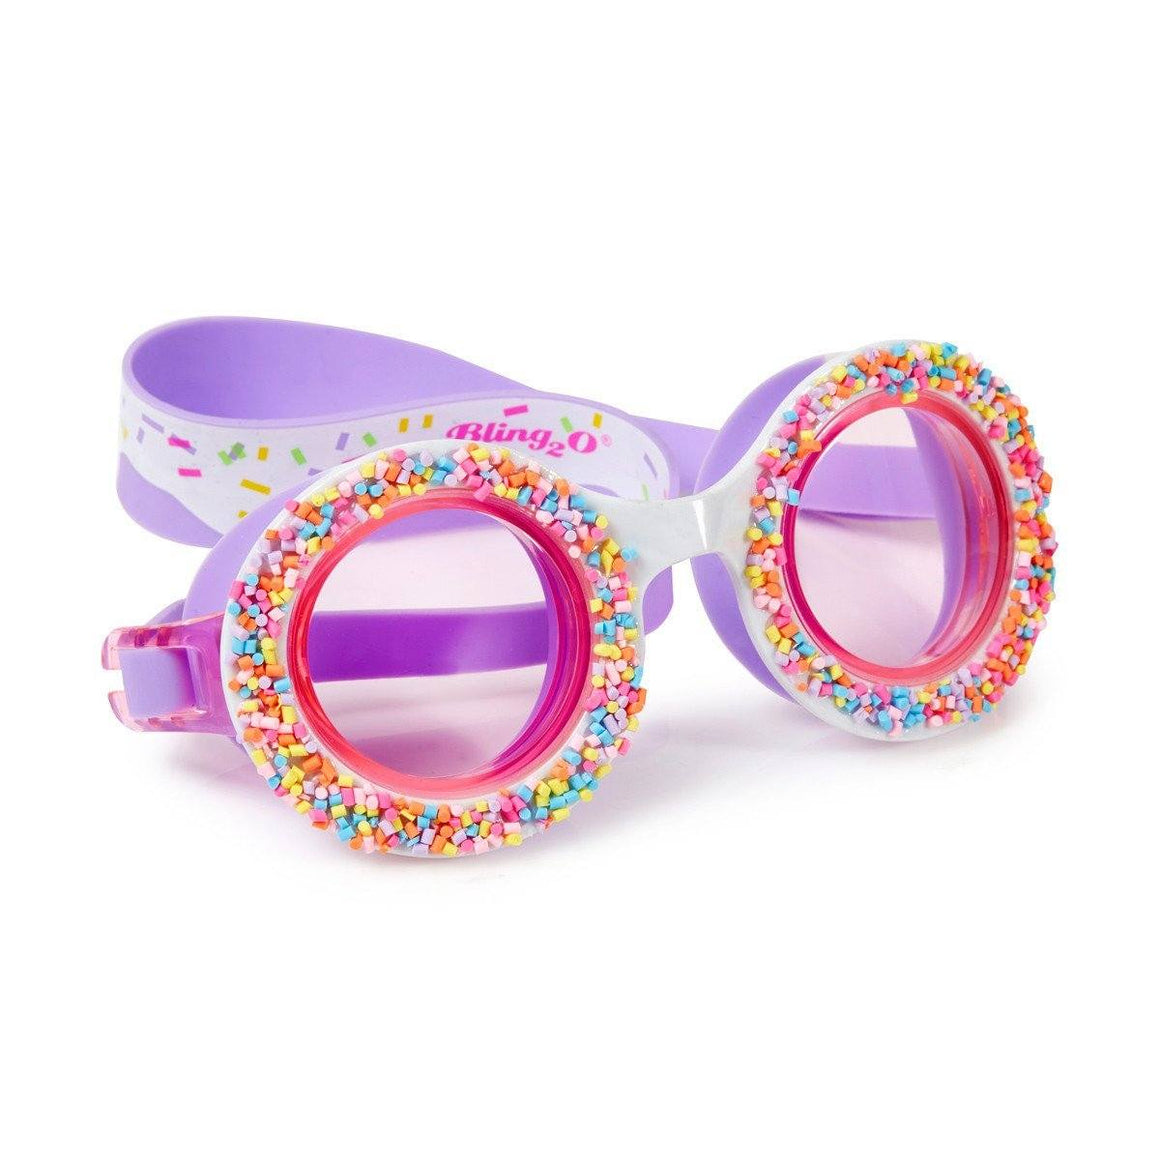 BLING2o GOGGLES - DONUTS 4U GRAPE JELLY